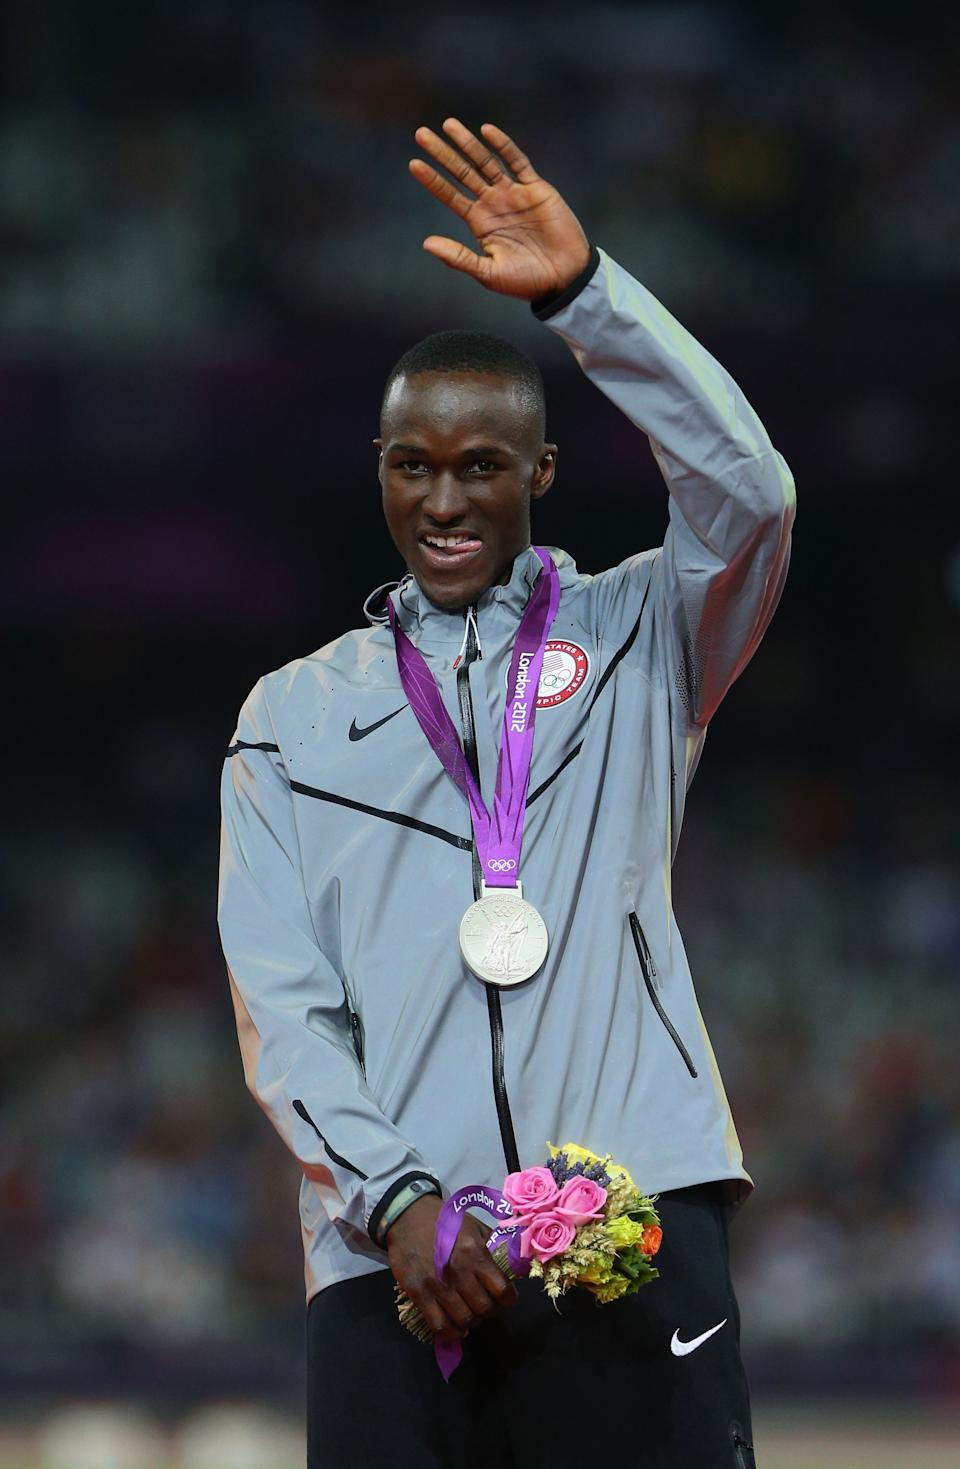 """Silver medalist <a href=""""http://sports.yahoo.com/olympics/track-field/will-claye-1135588/"""" data-ylk=""""slk:Will Claye"""" class=""""link rapid-noclick-resp"""">Will Claye</a> of the United States celebrates on the podium during the medal ceremony for the Men's Triple Jump on Day 13 of the London 2012 Olympic Games at Olympic Stadium on August 9, 2012 in London, England. (Getty Images)"""